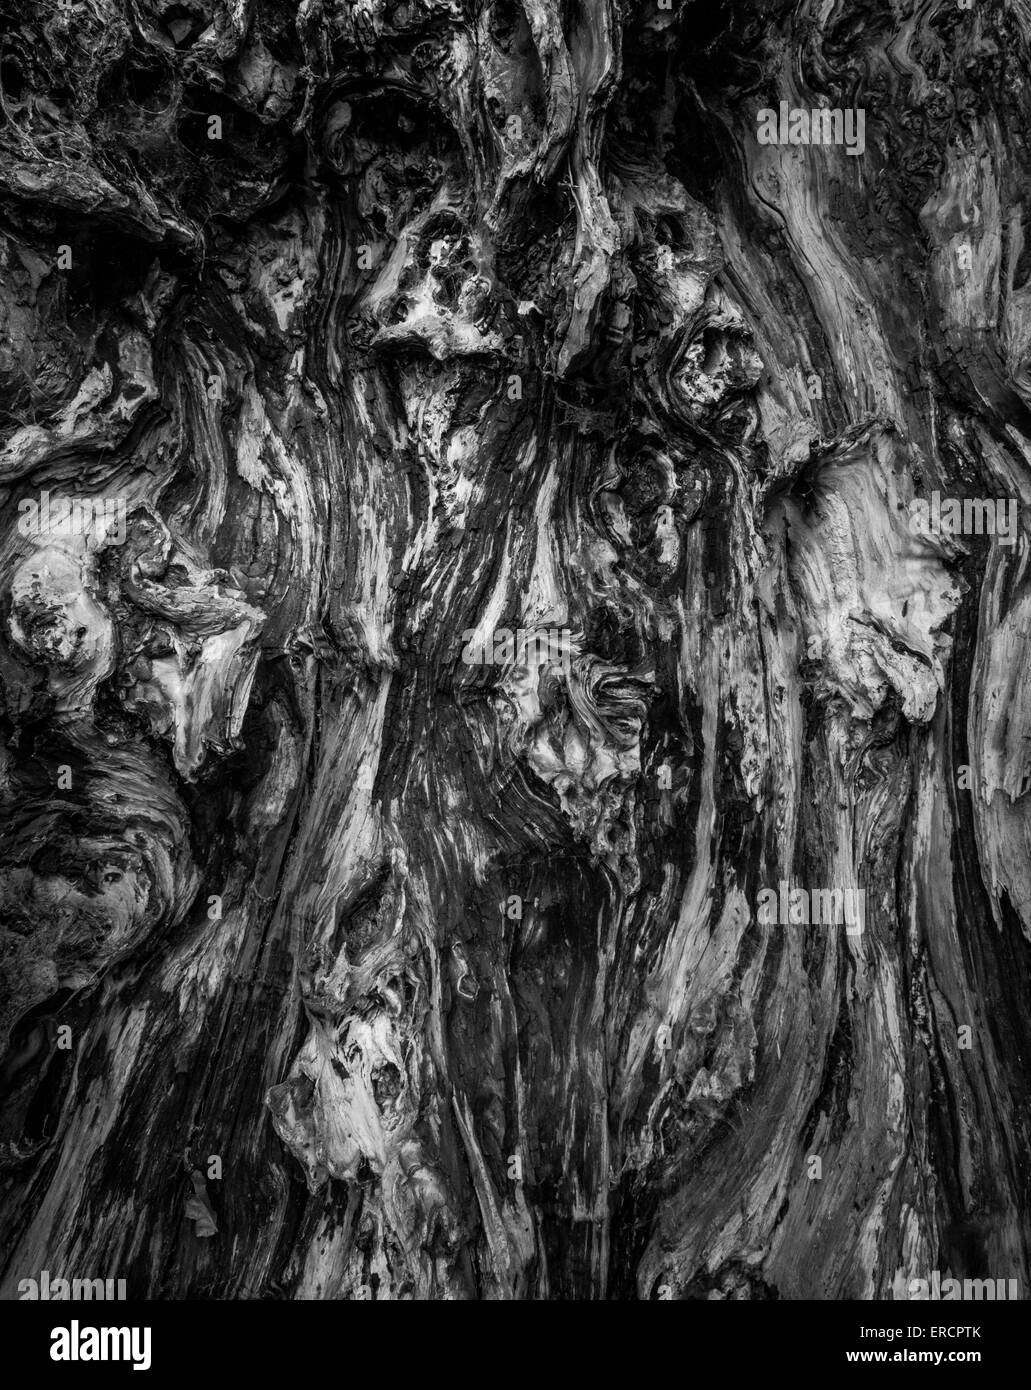 Inside the hollow of an old yew tree. - Stock Image